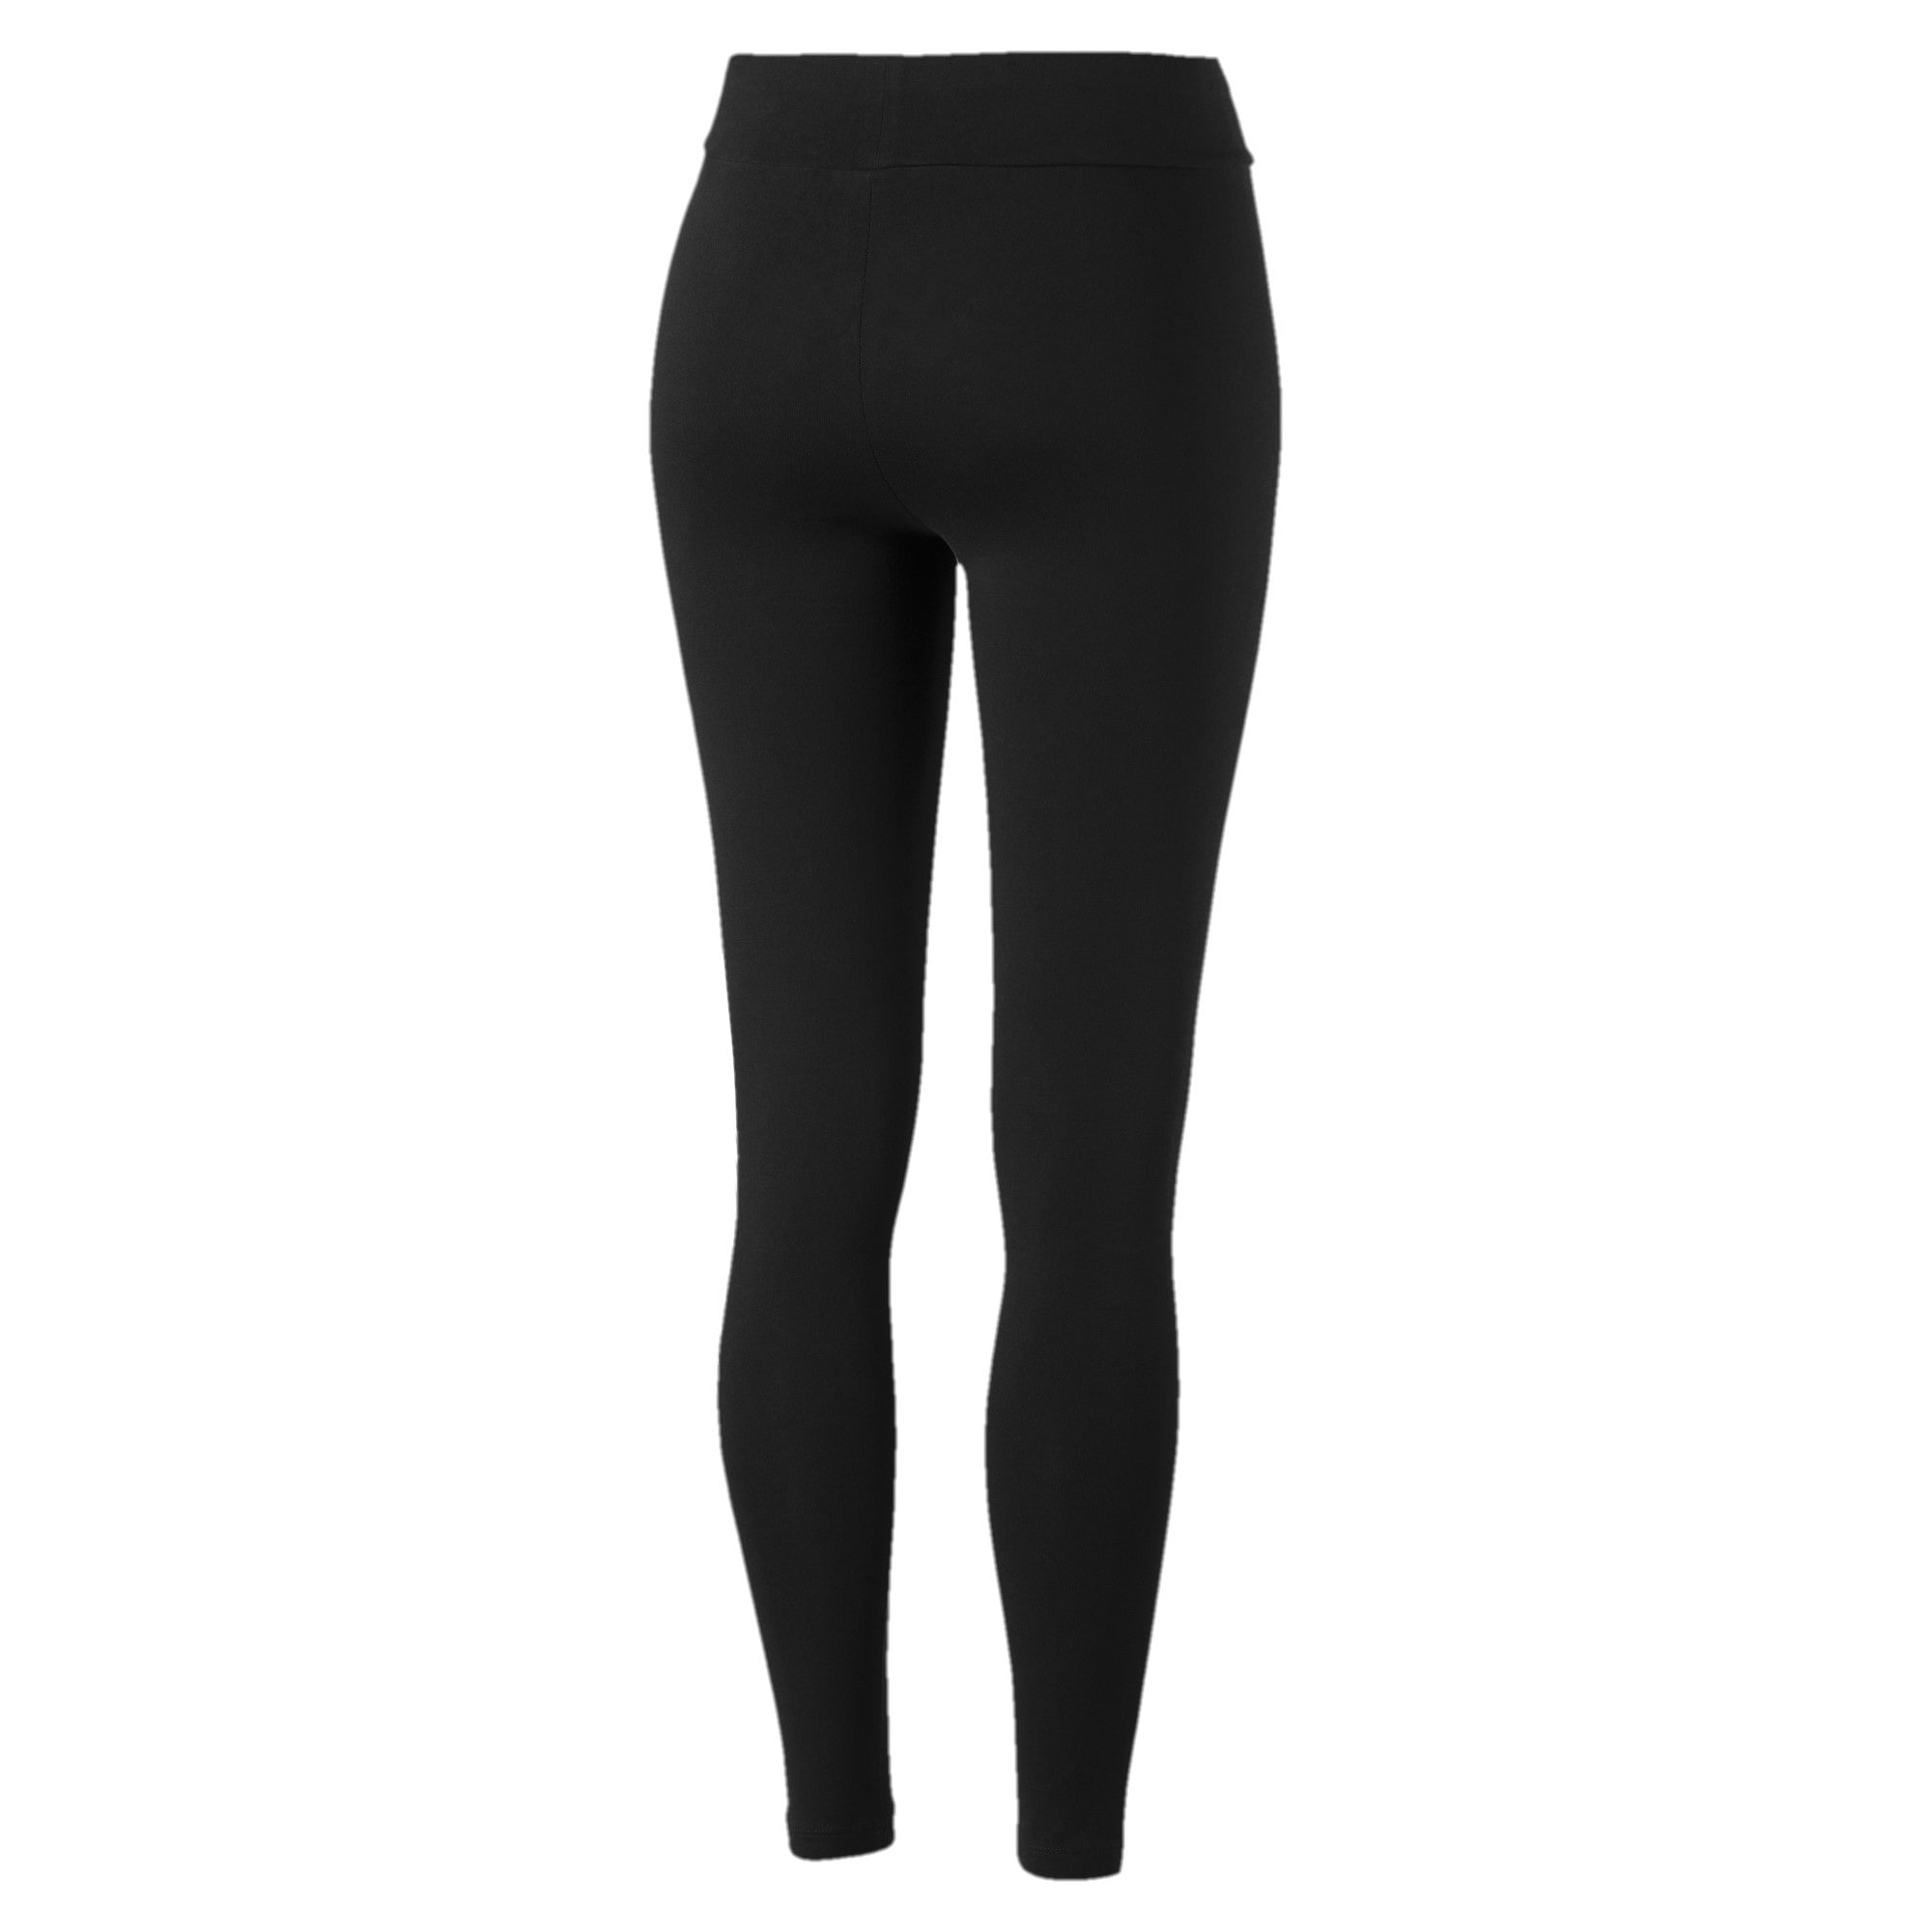 Thumbnail 2 of Essentials+ Graphic Women's Leggings, Puma Black, medium